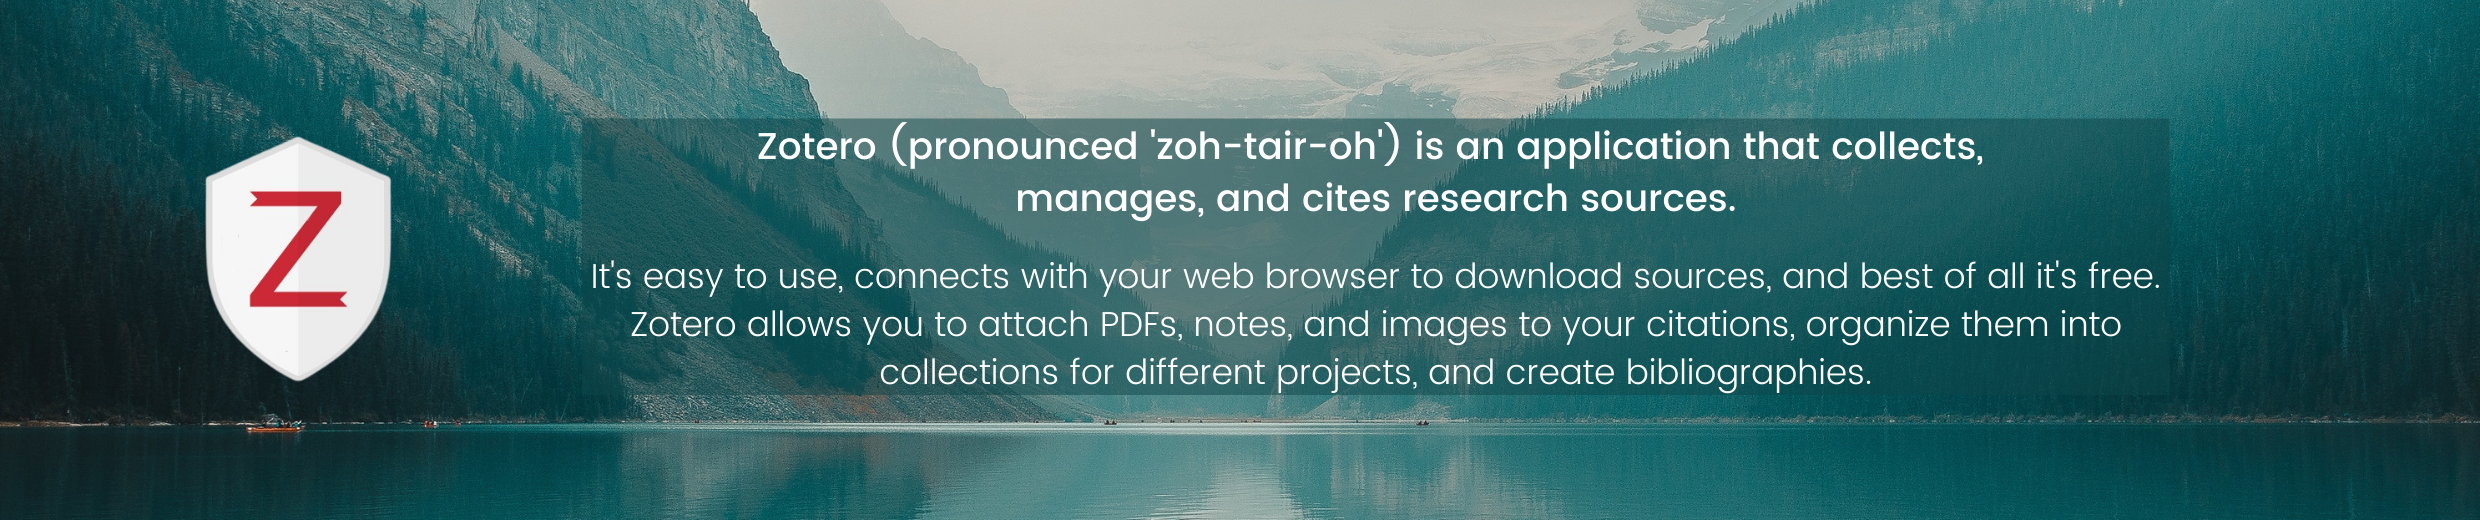 Zotero logo and description text that states that Zotero is an application that collects, manages, and cites research sources.